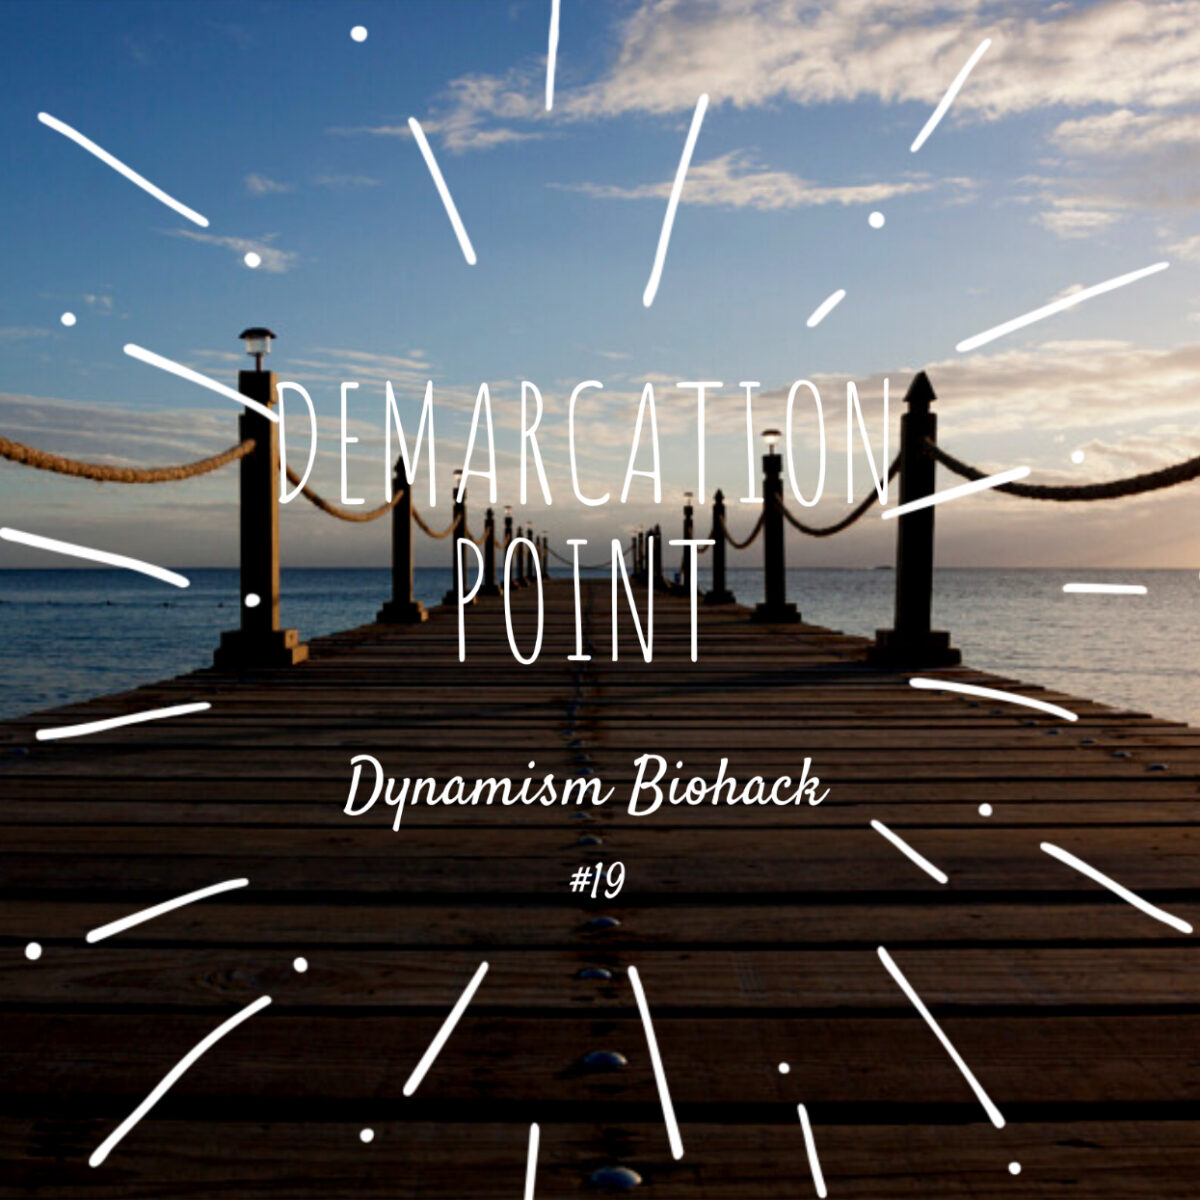 #19: Demarcation Point